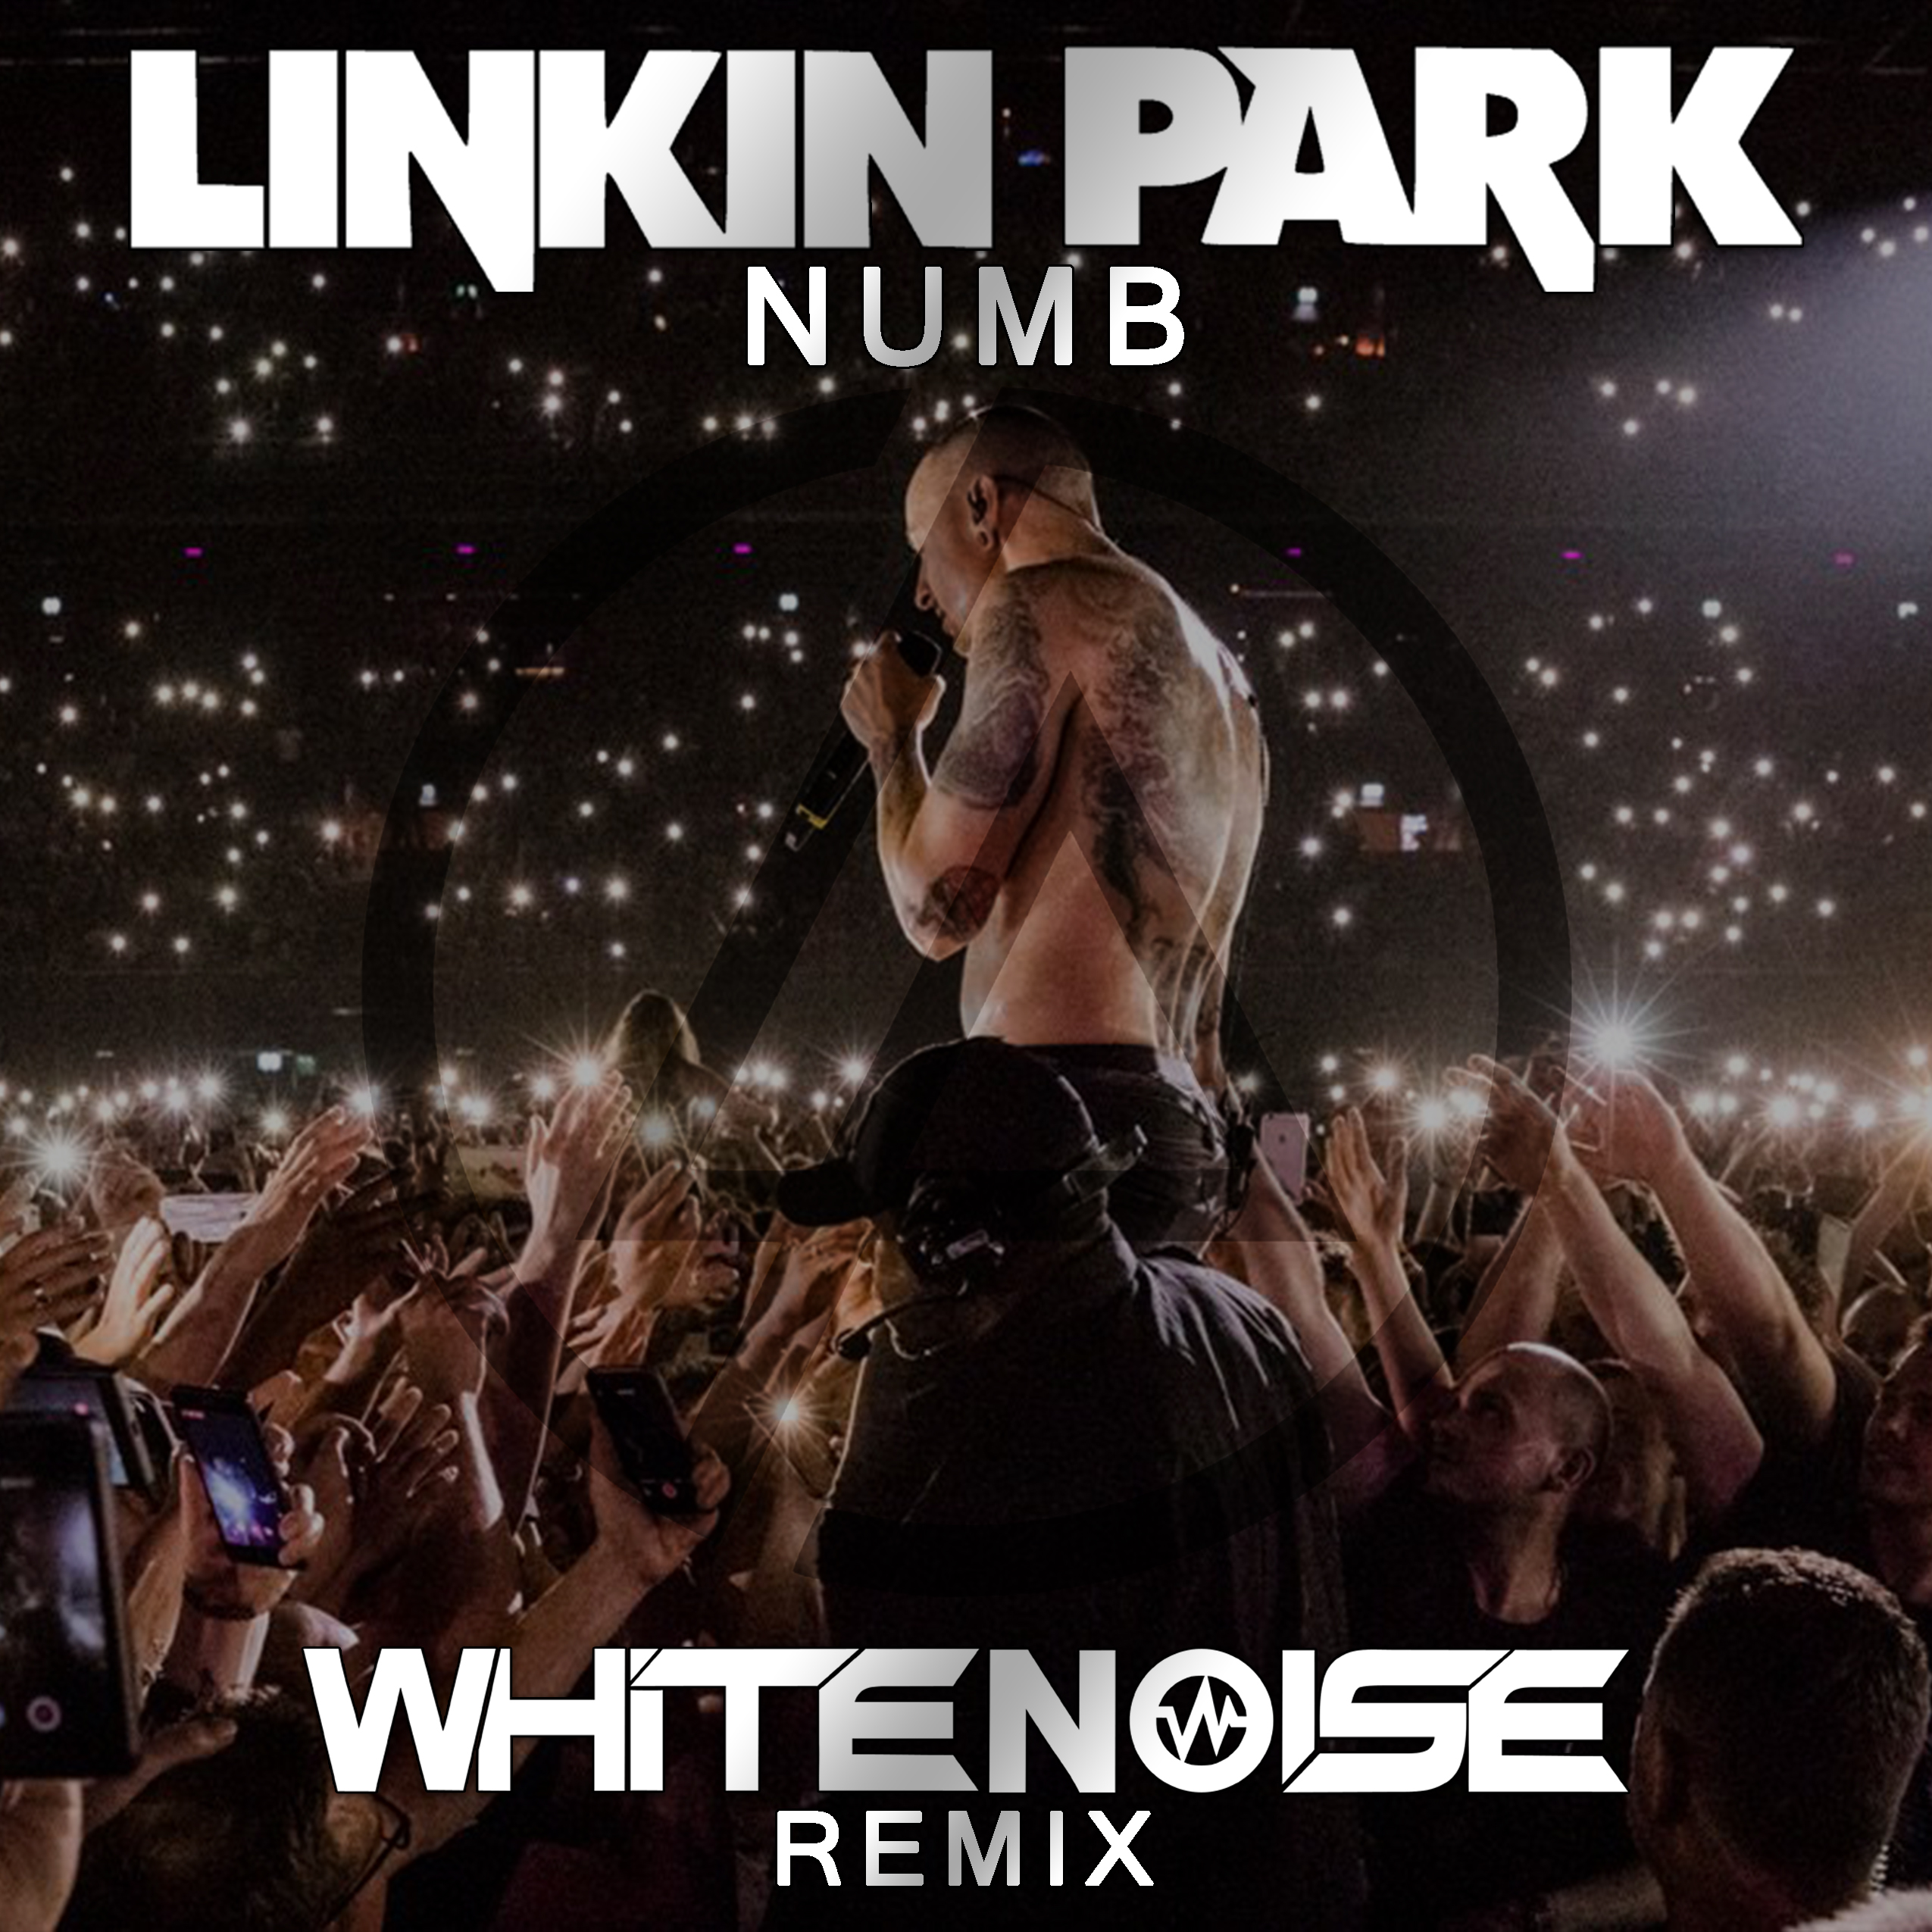 linkin park mp3 download 320kbps